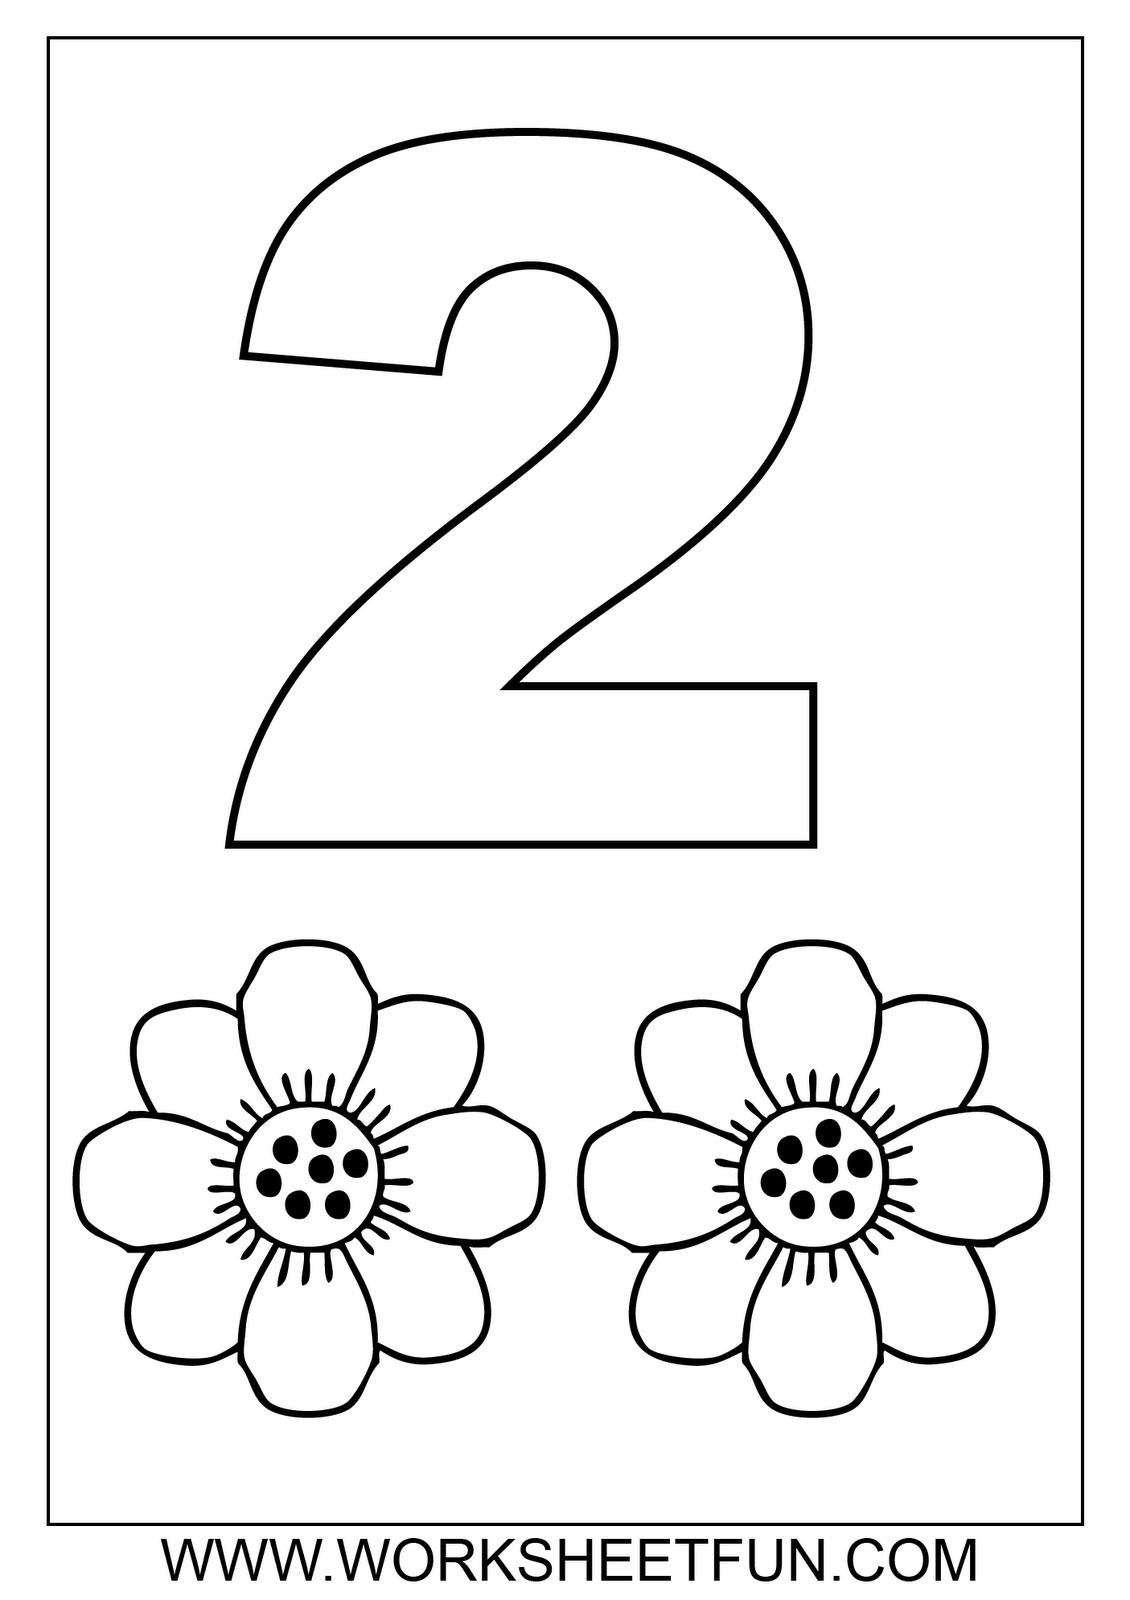 Numbers Colouring Sheets Free Online Printable Coloring Pages For Kids Get The Latest Images Favorite